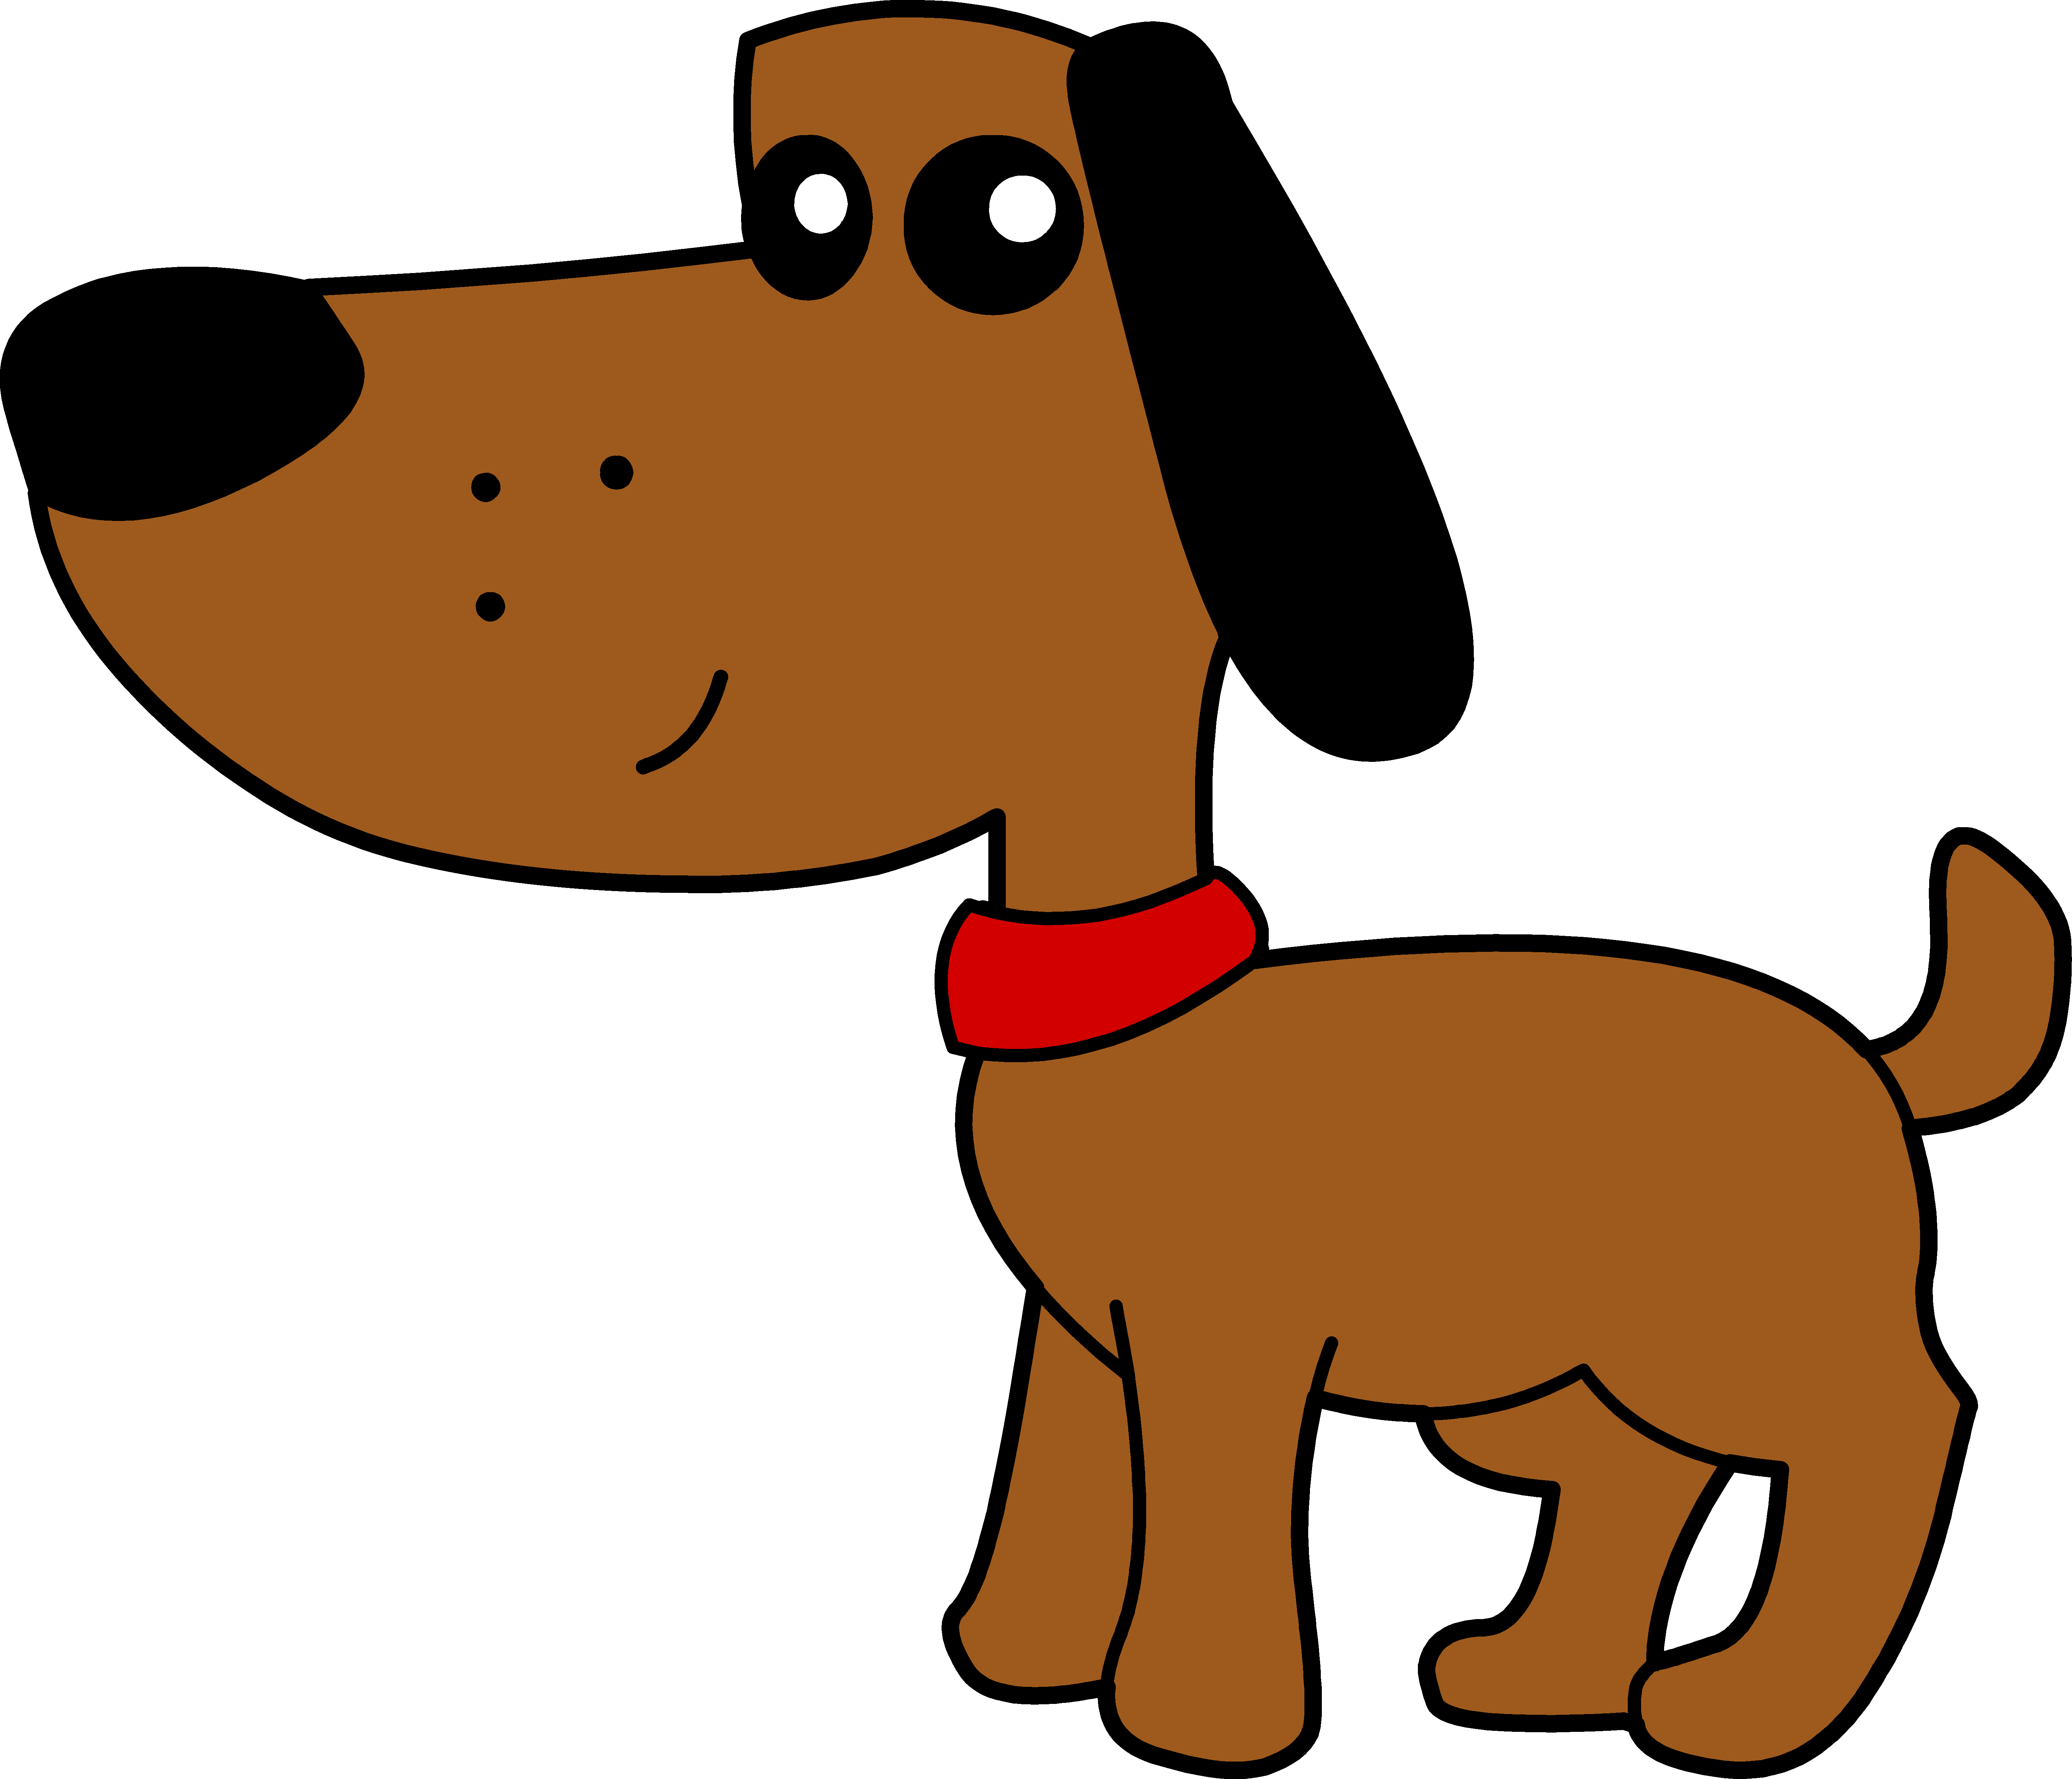 Clip Art Dogs And Cats | Clipart library - Free Clipart Images